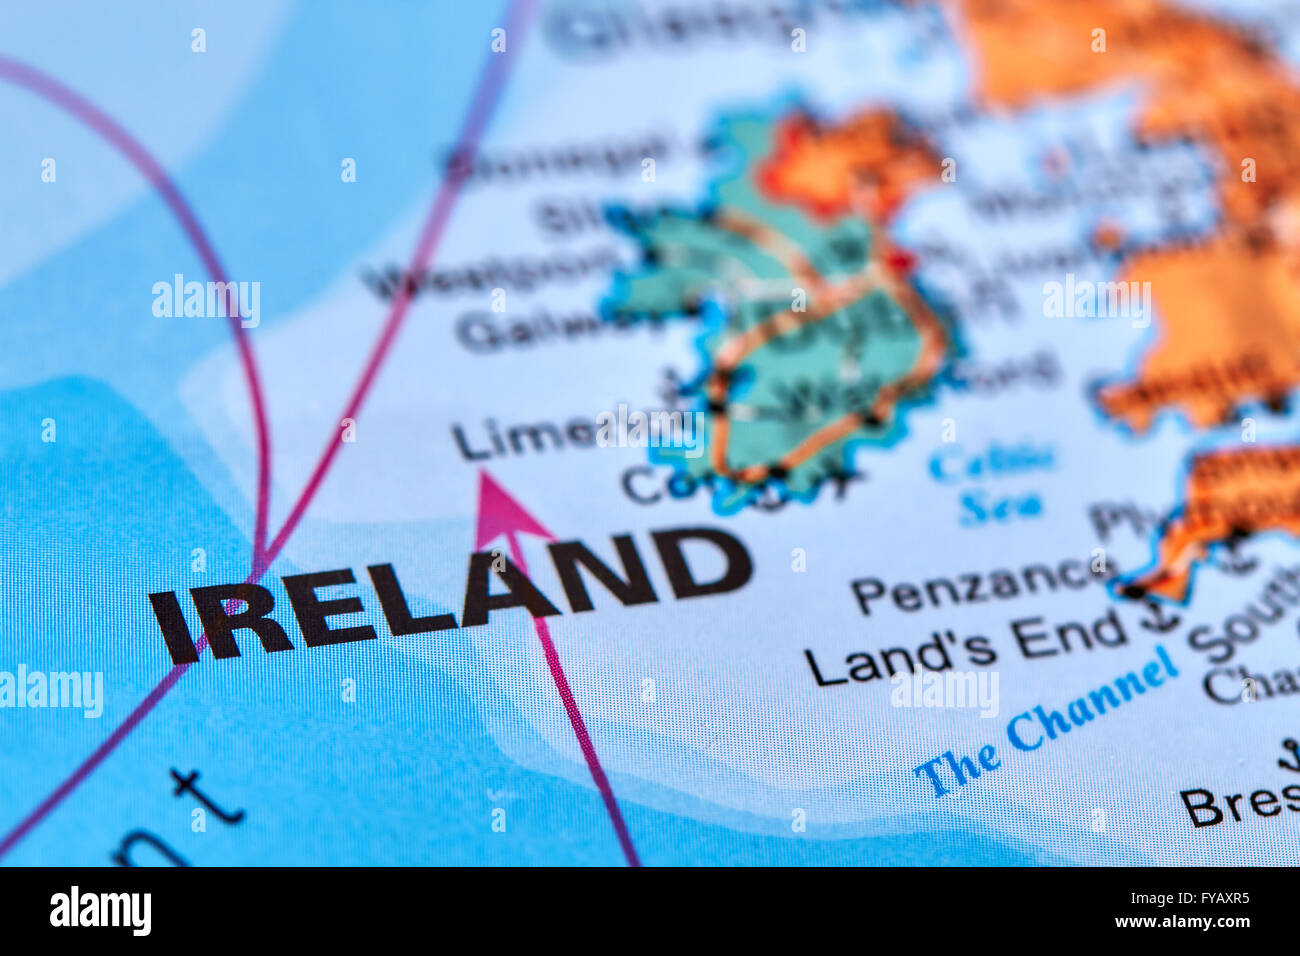 Country Of Ireland Map.Ireland Country In Europe On The World Map Stock Photo 102888105